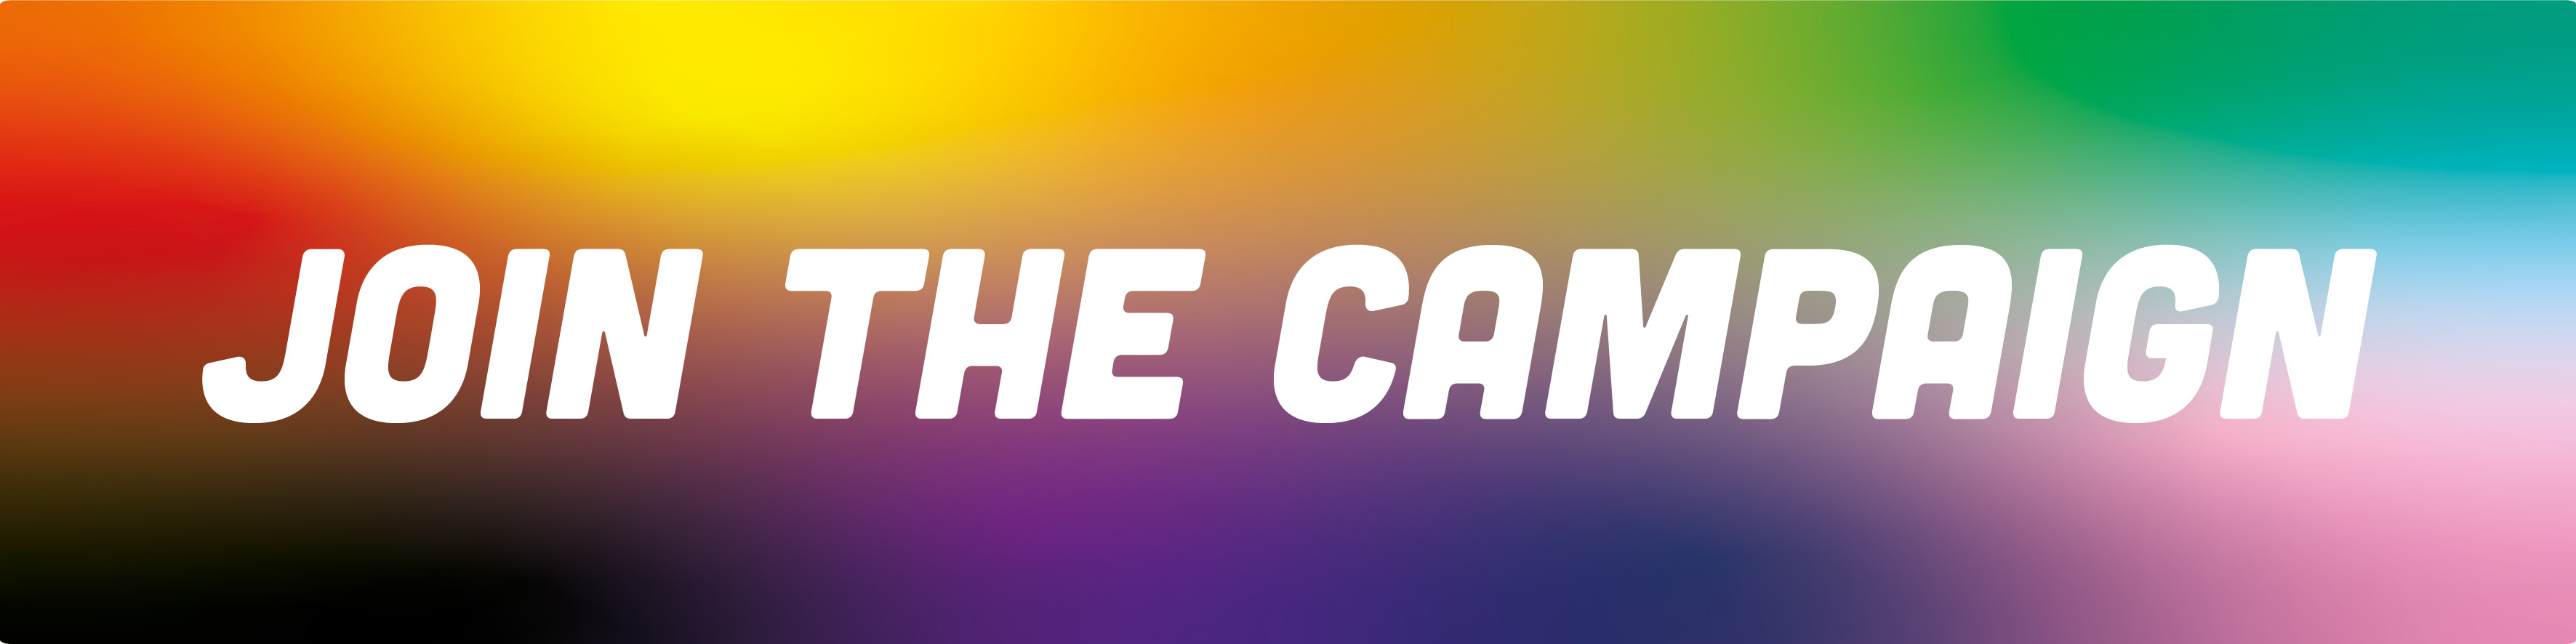 """Image of a rainbow gradient with the text """"Join the campaign"""" on"""